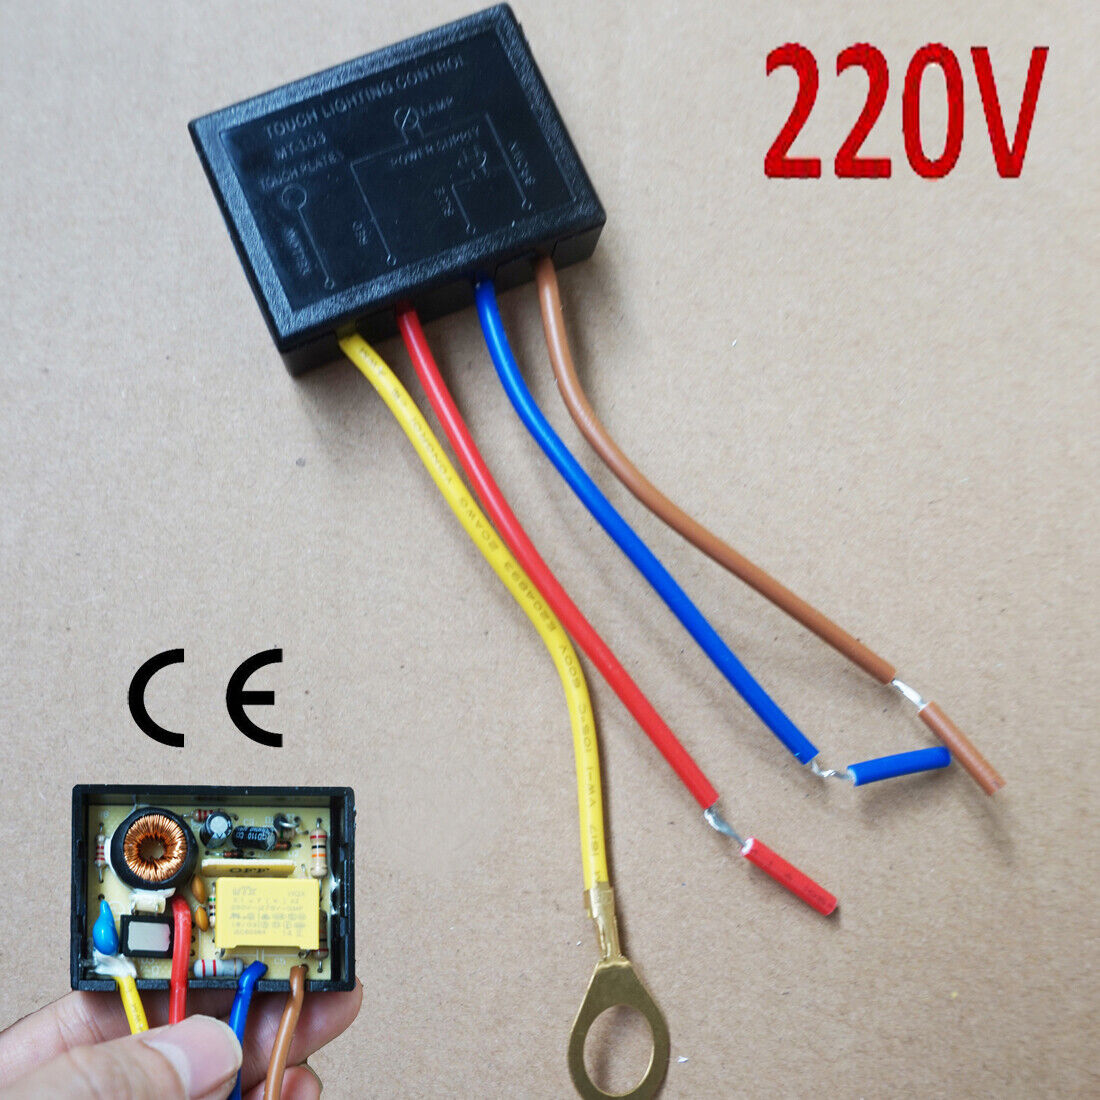 220v Touch Light Lamp Dimmer Switch Control Module Sensor Halogen Tungsten Led Ebay